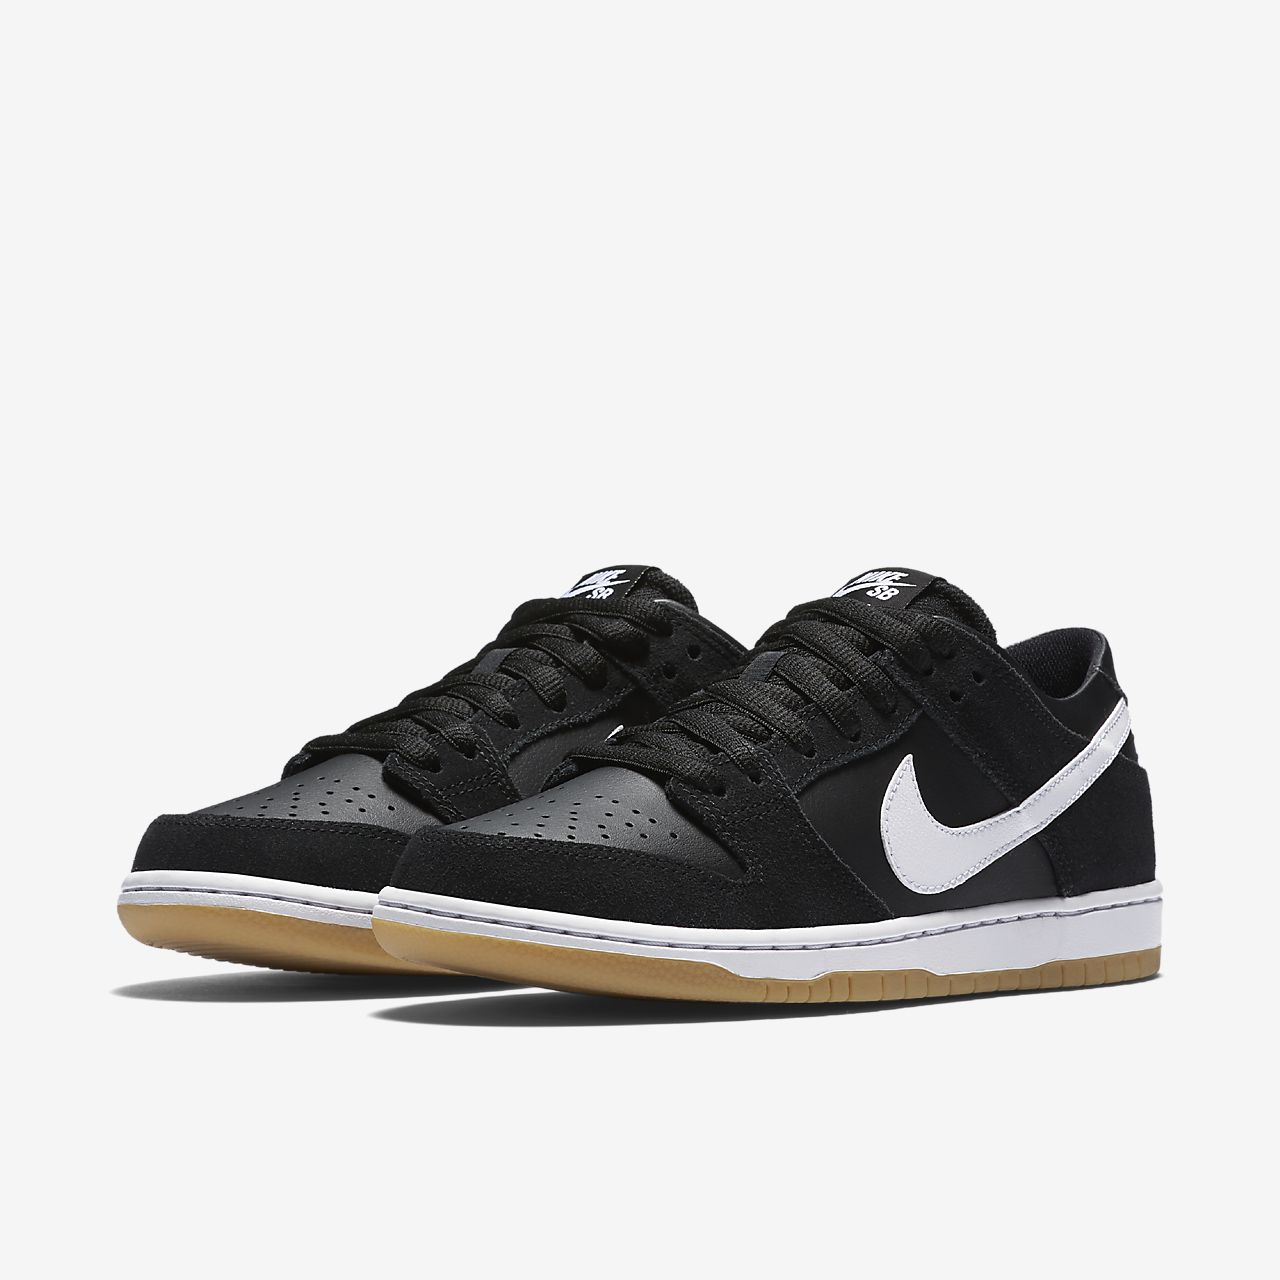 ... Nike SB Dunk Low Pro Men's Skateboarding Shoe